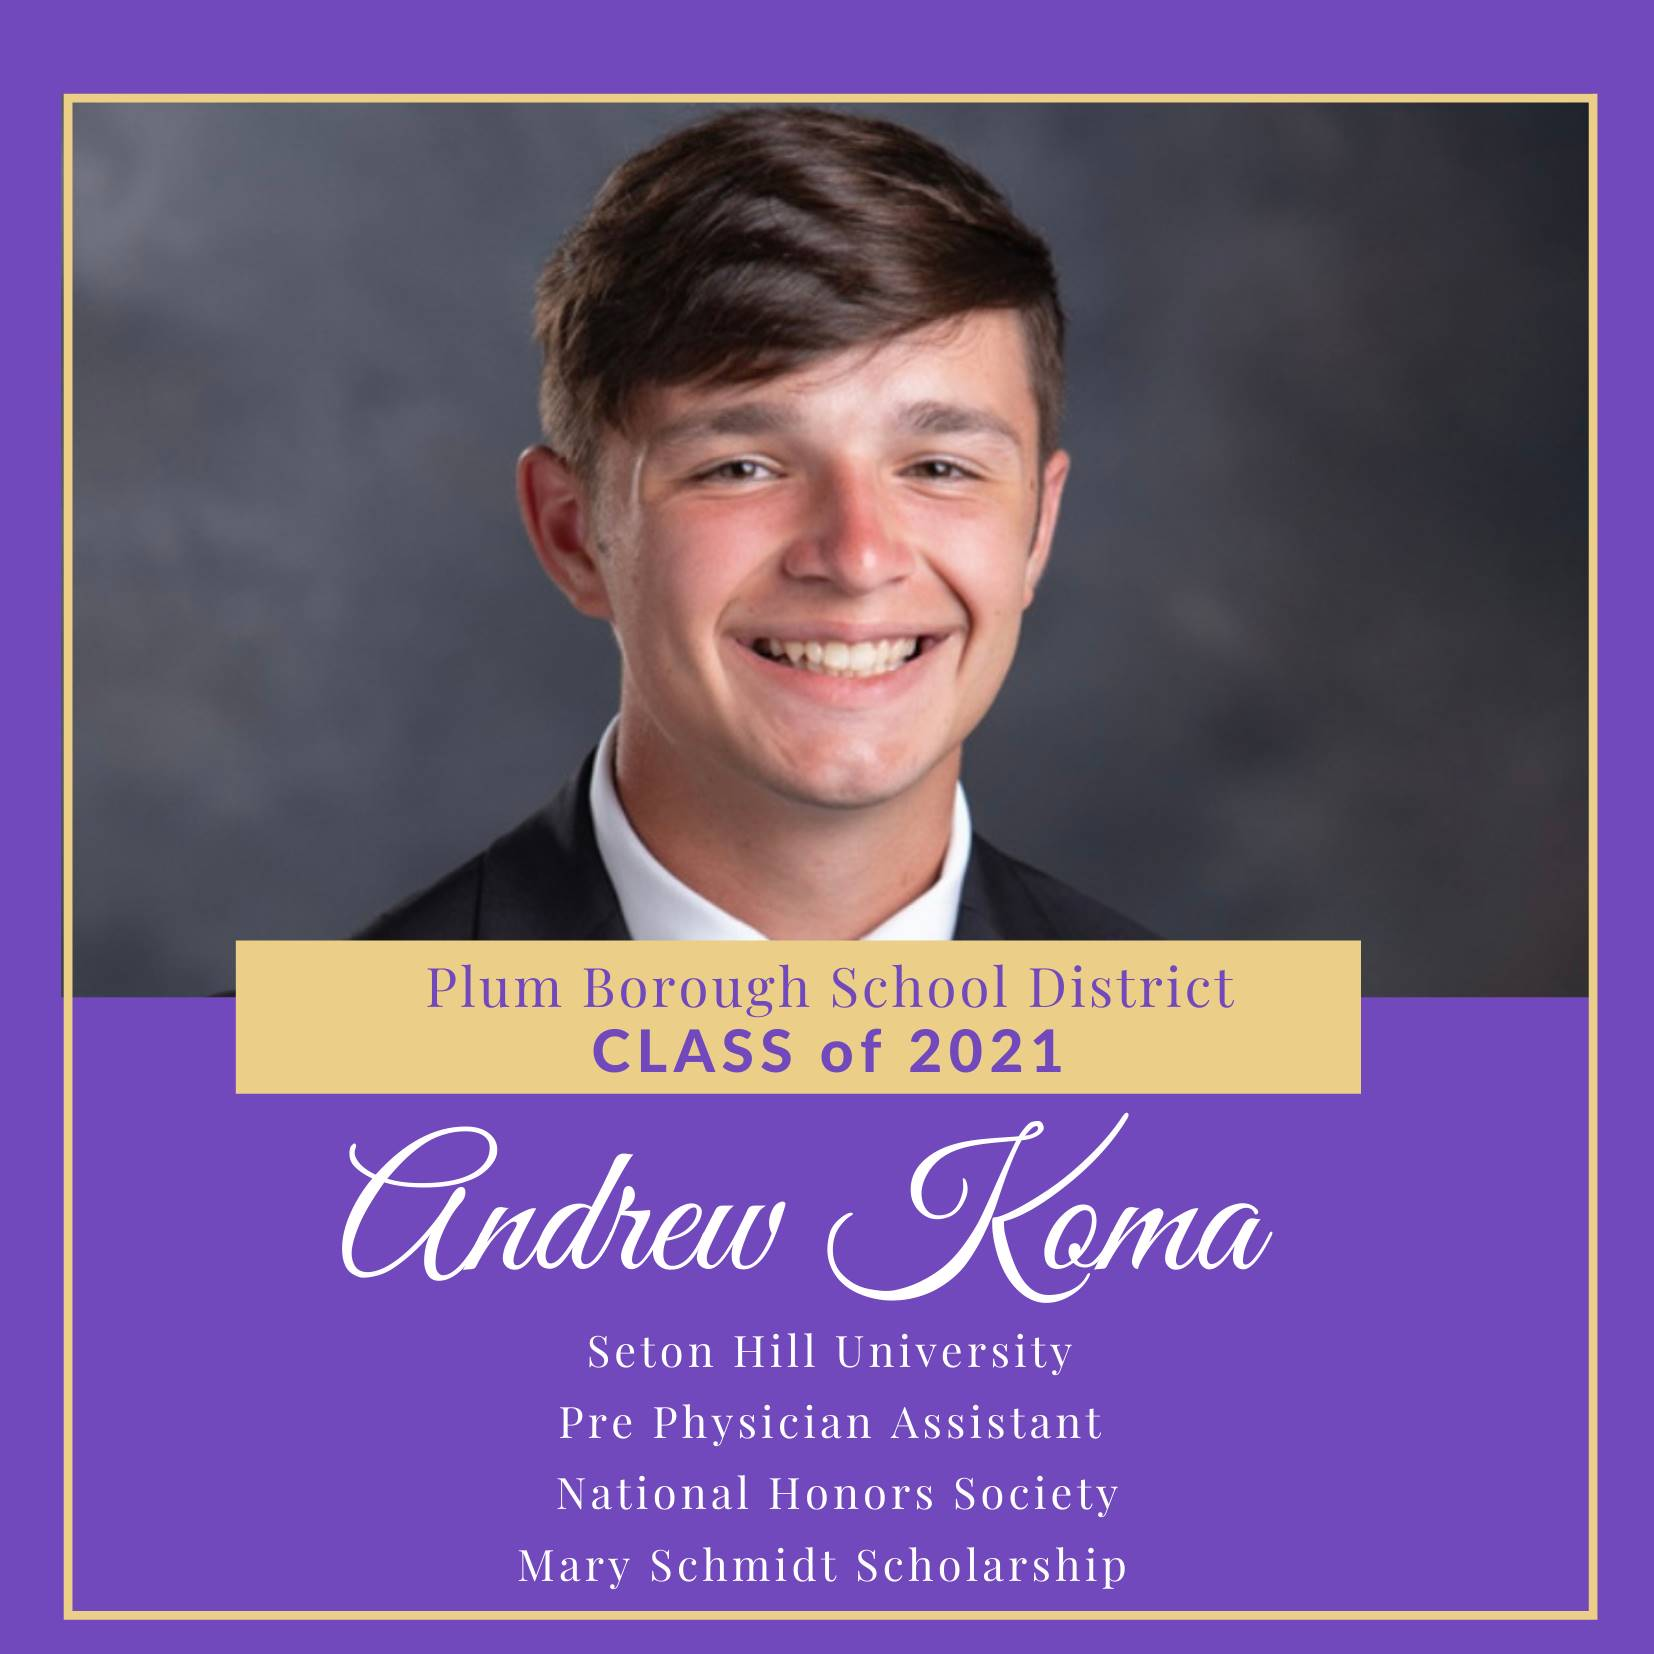 Congratulations to Andrew Koma, Class of 2021!